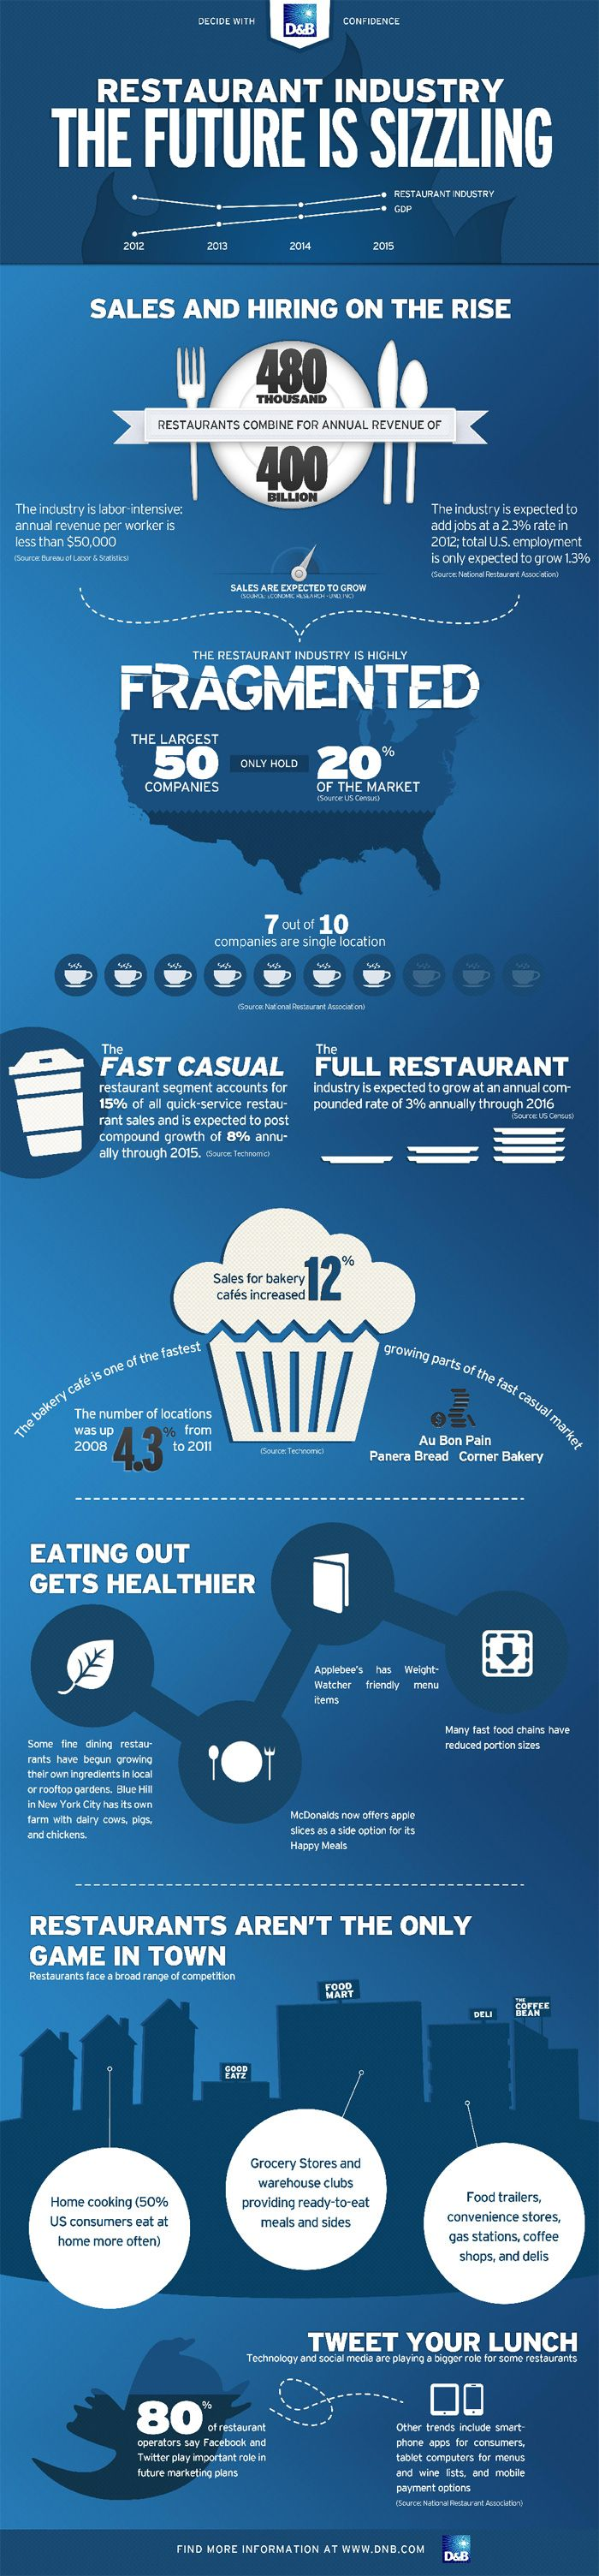 Restaurant Industry Infographic Restaurant Industry The Future